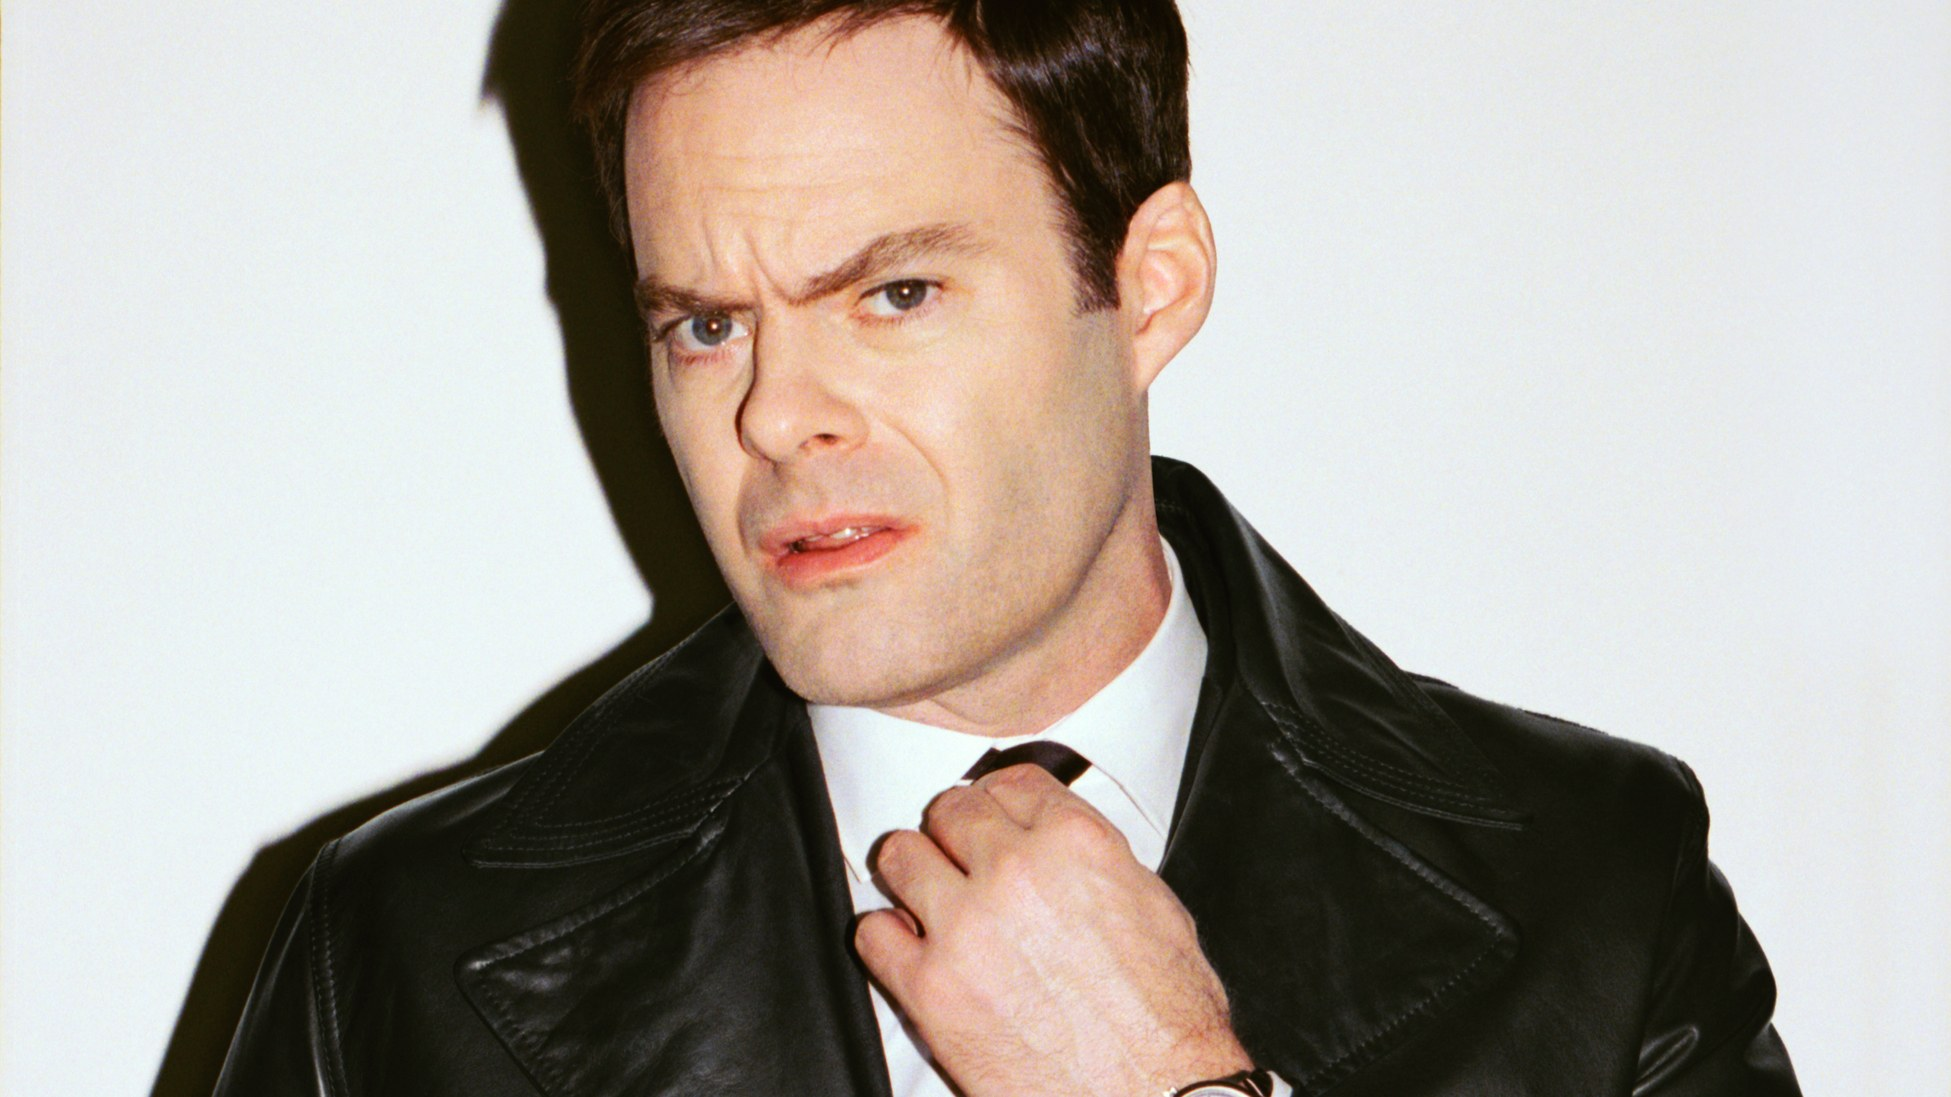 bill-hader-gq-barry-eric-t-white-03